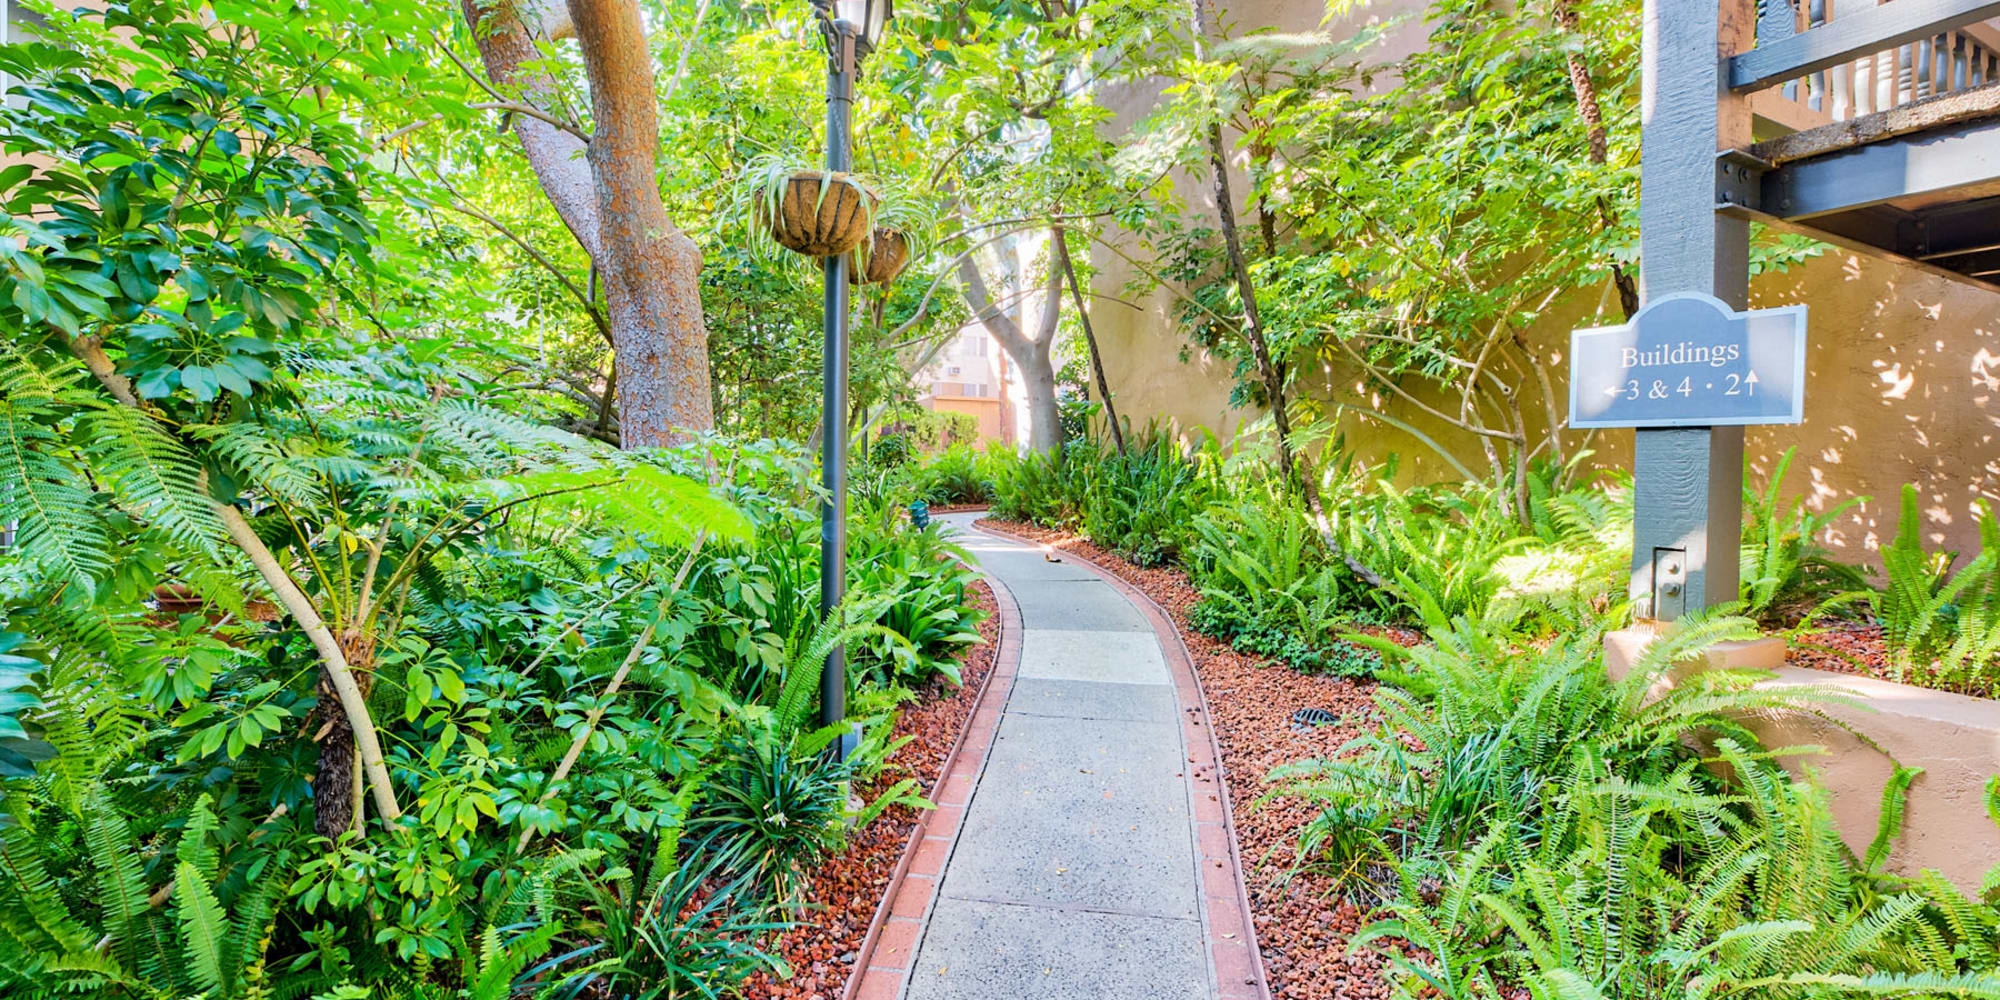 Well-maintained pathway through the lush garden-style landscaping at Casa Granada in Los Angeles, California